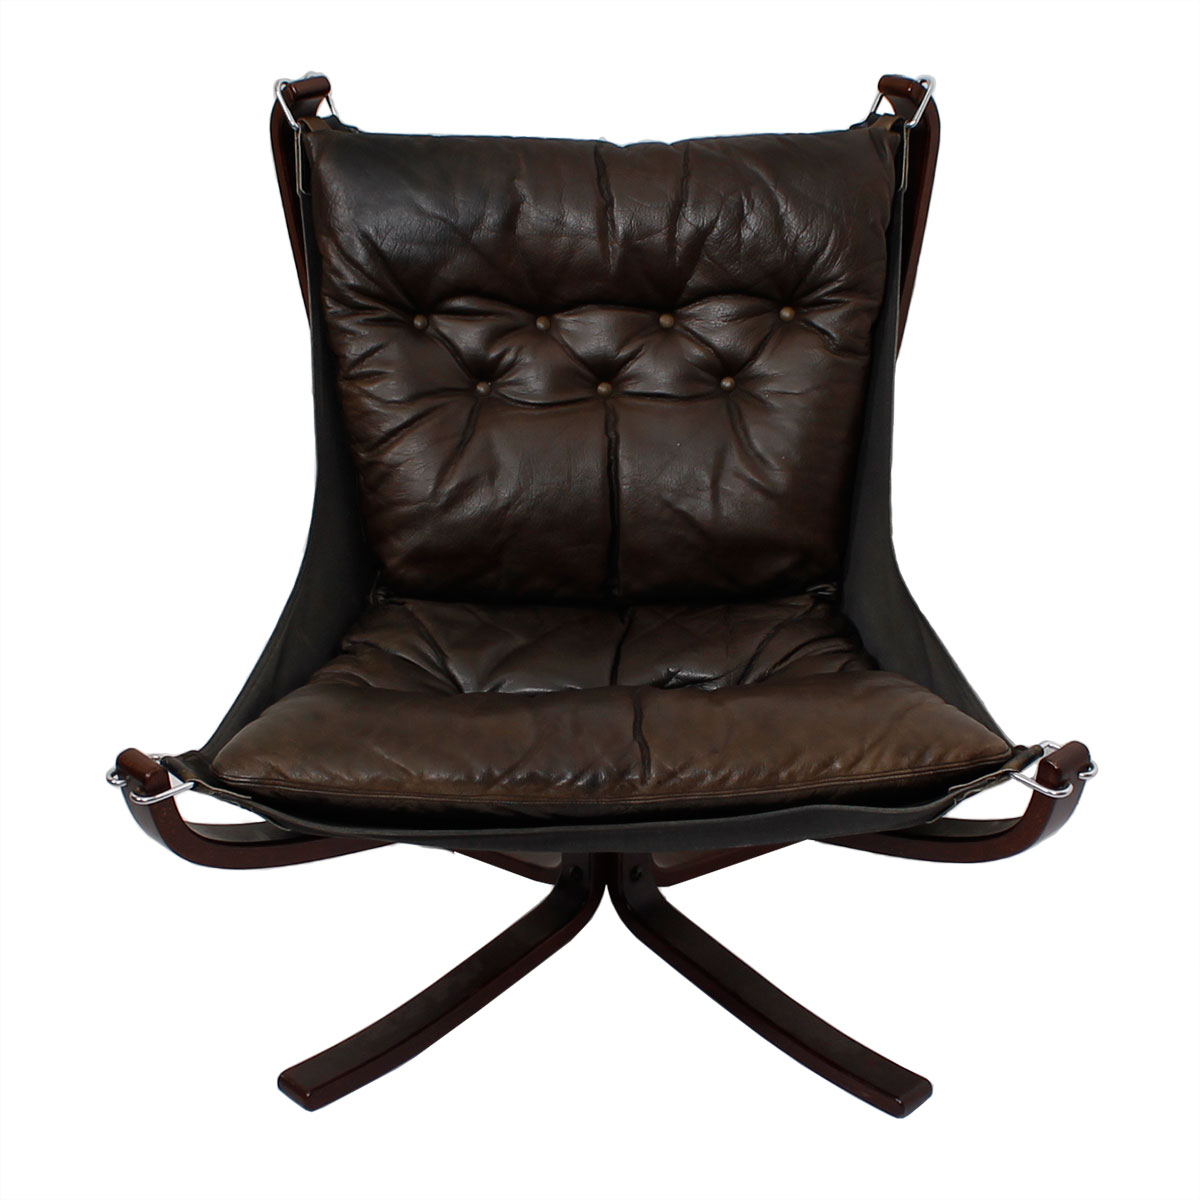 Norwegian Rosewood Leather 'Falcon' Lounge Chair